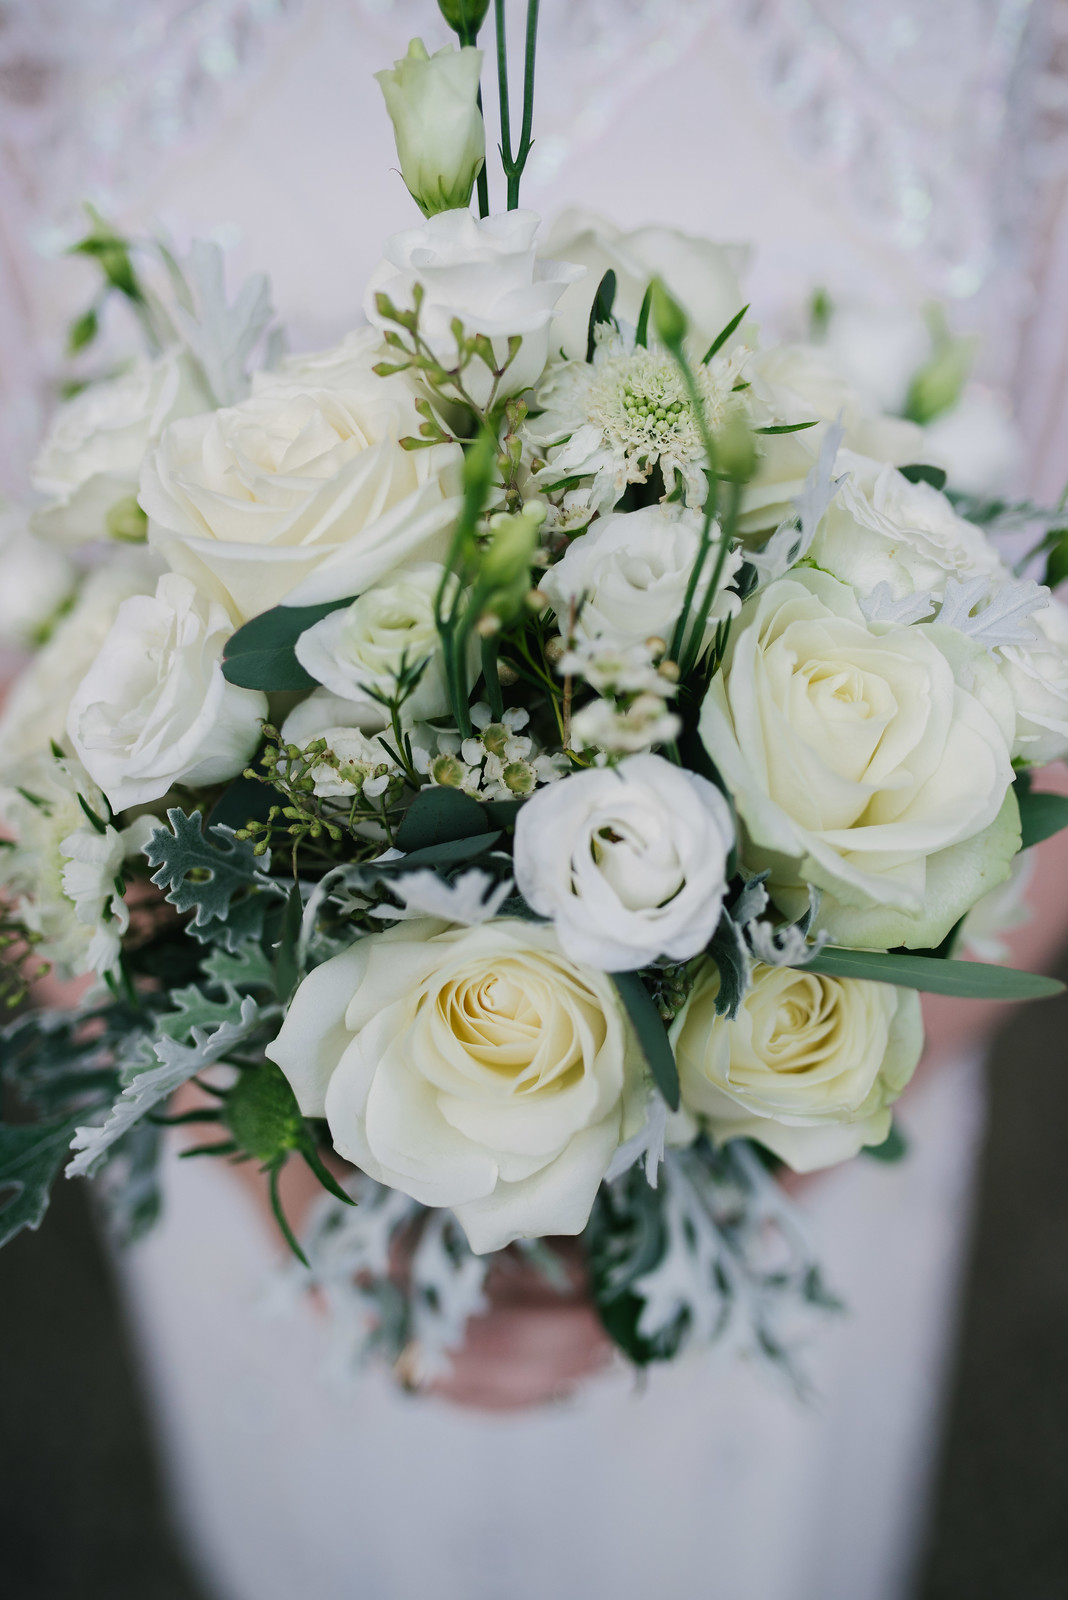 this is a picture of a wedding bouquet with white roses